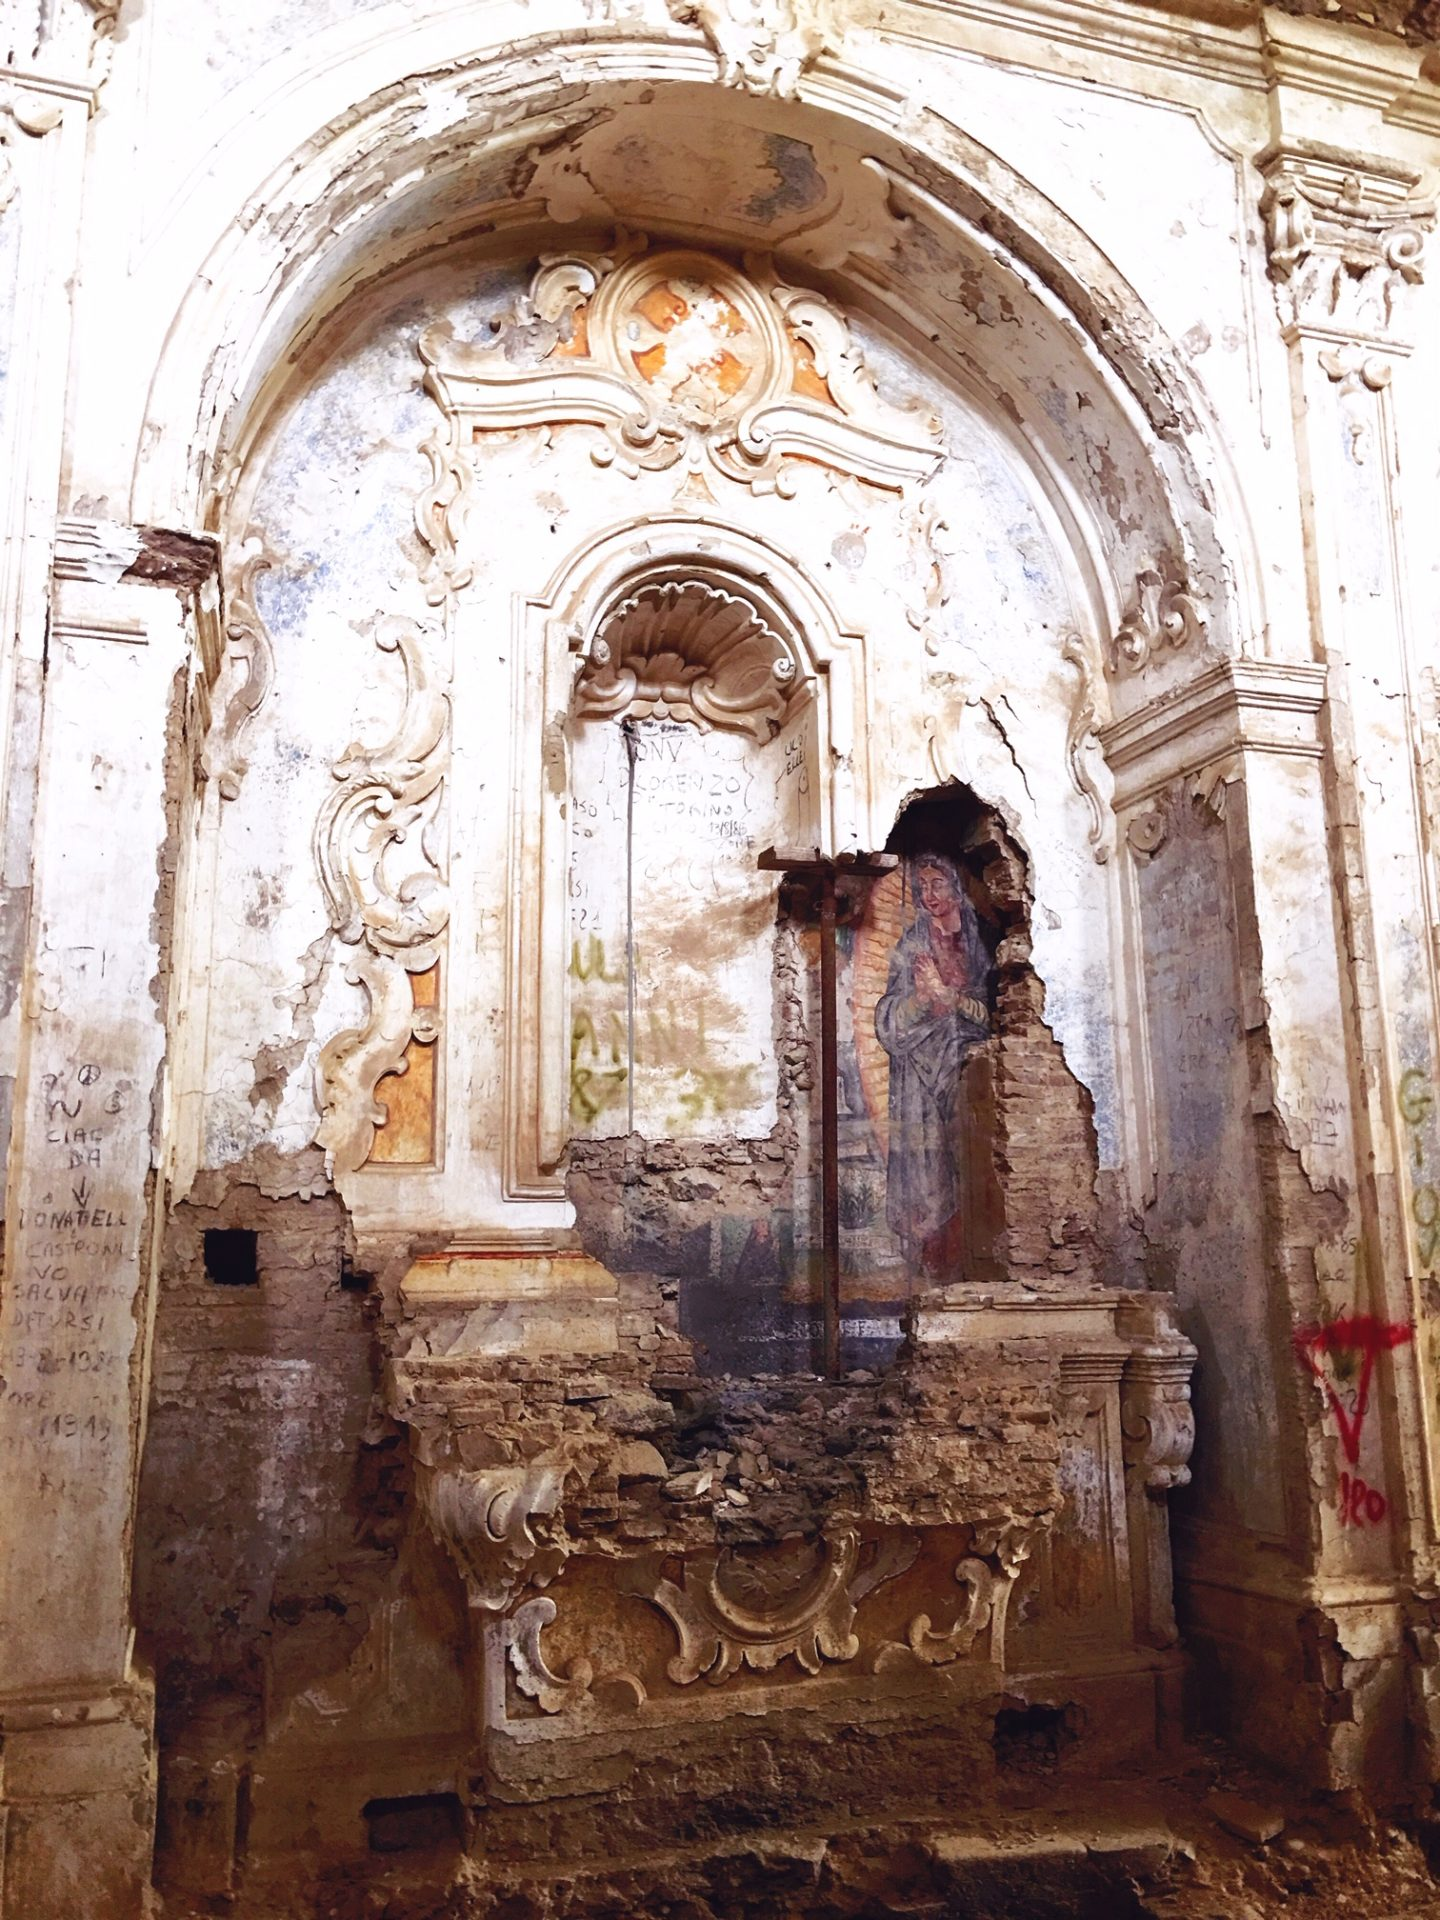 frescoes behind the walls in Convento San Francesco, Tursi, Basilicata